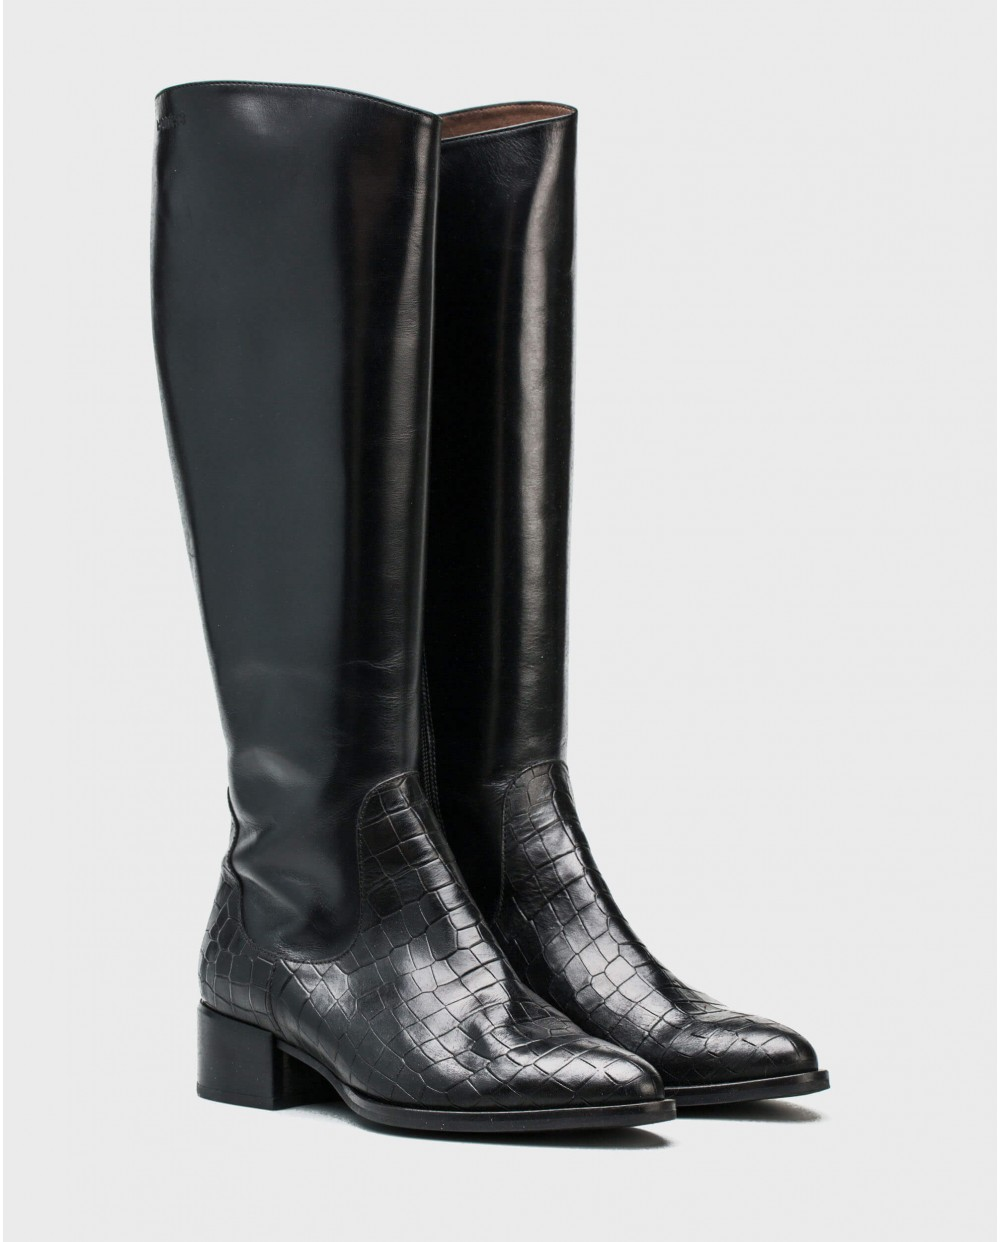 Wonders-Outlet Women-Boots in a combination of mock/croc leather